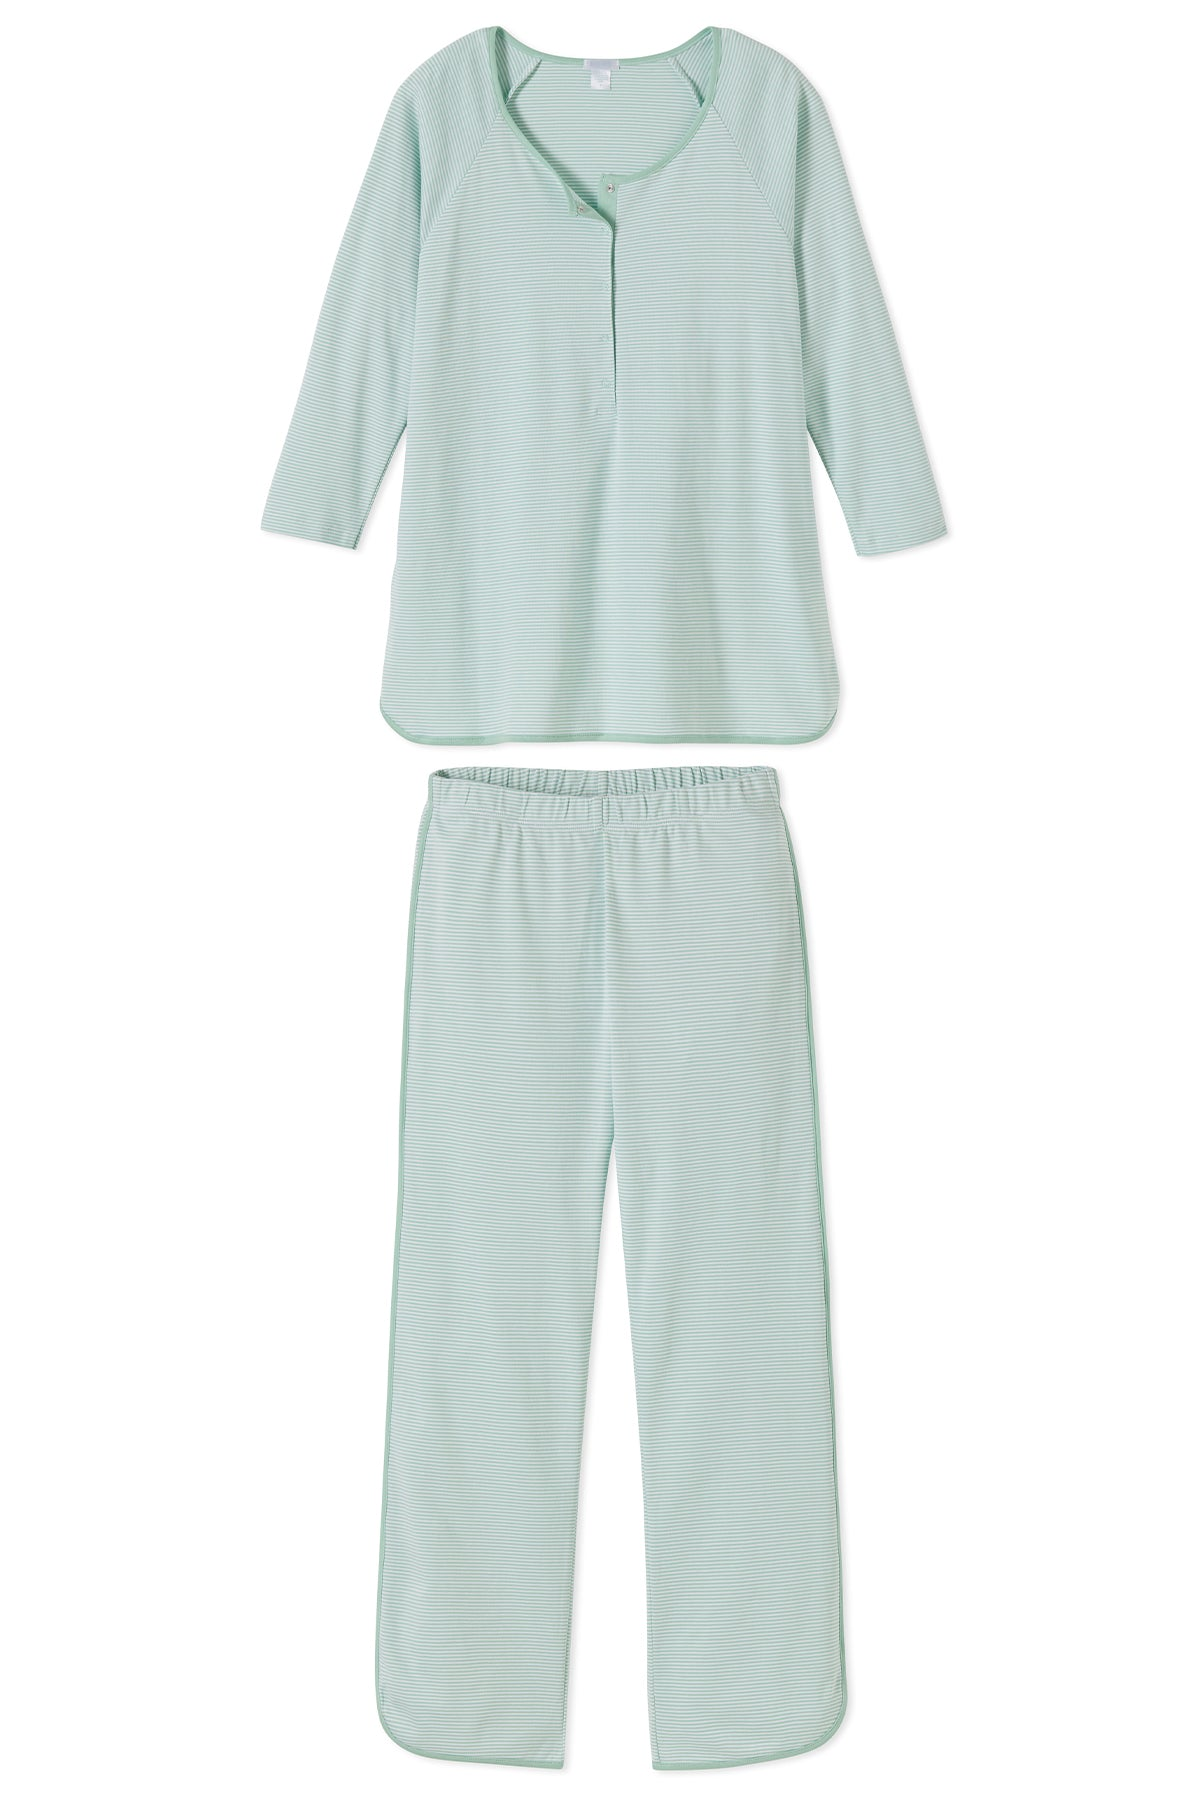 Pima Maternity Long-Long Set in Parisian Green